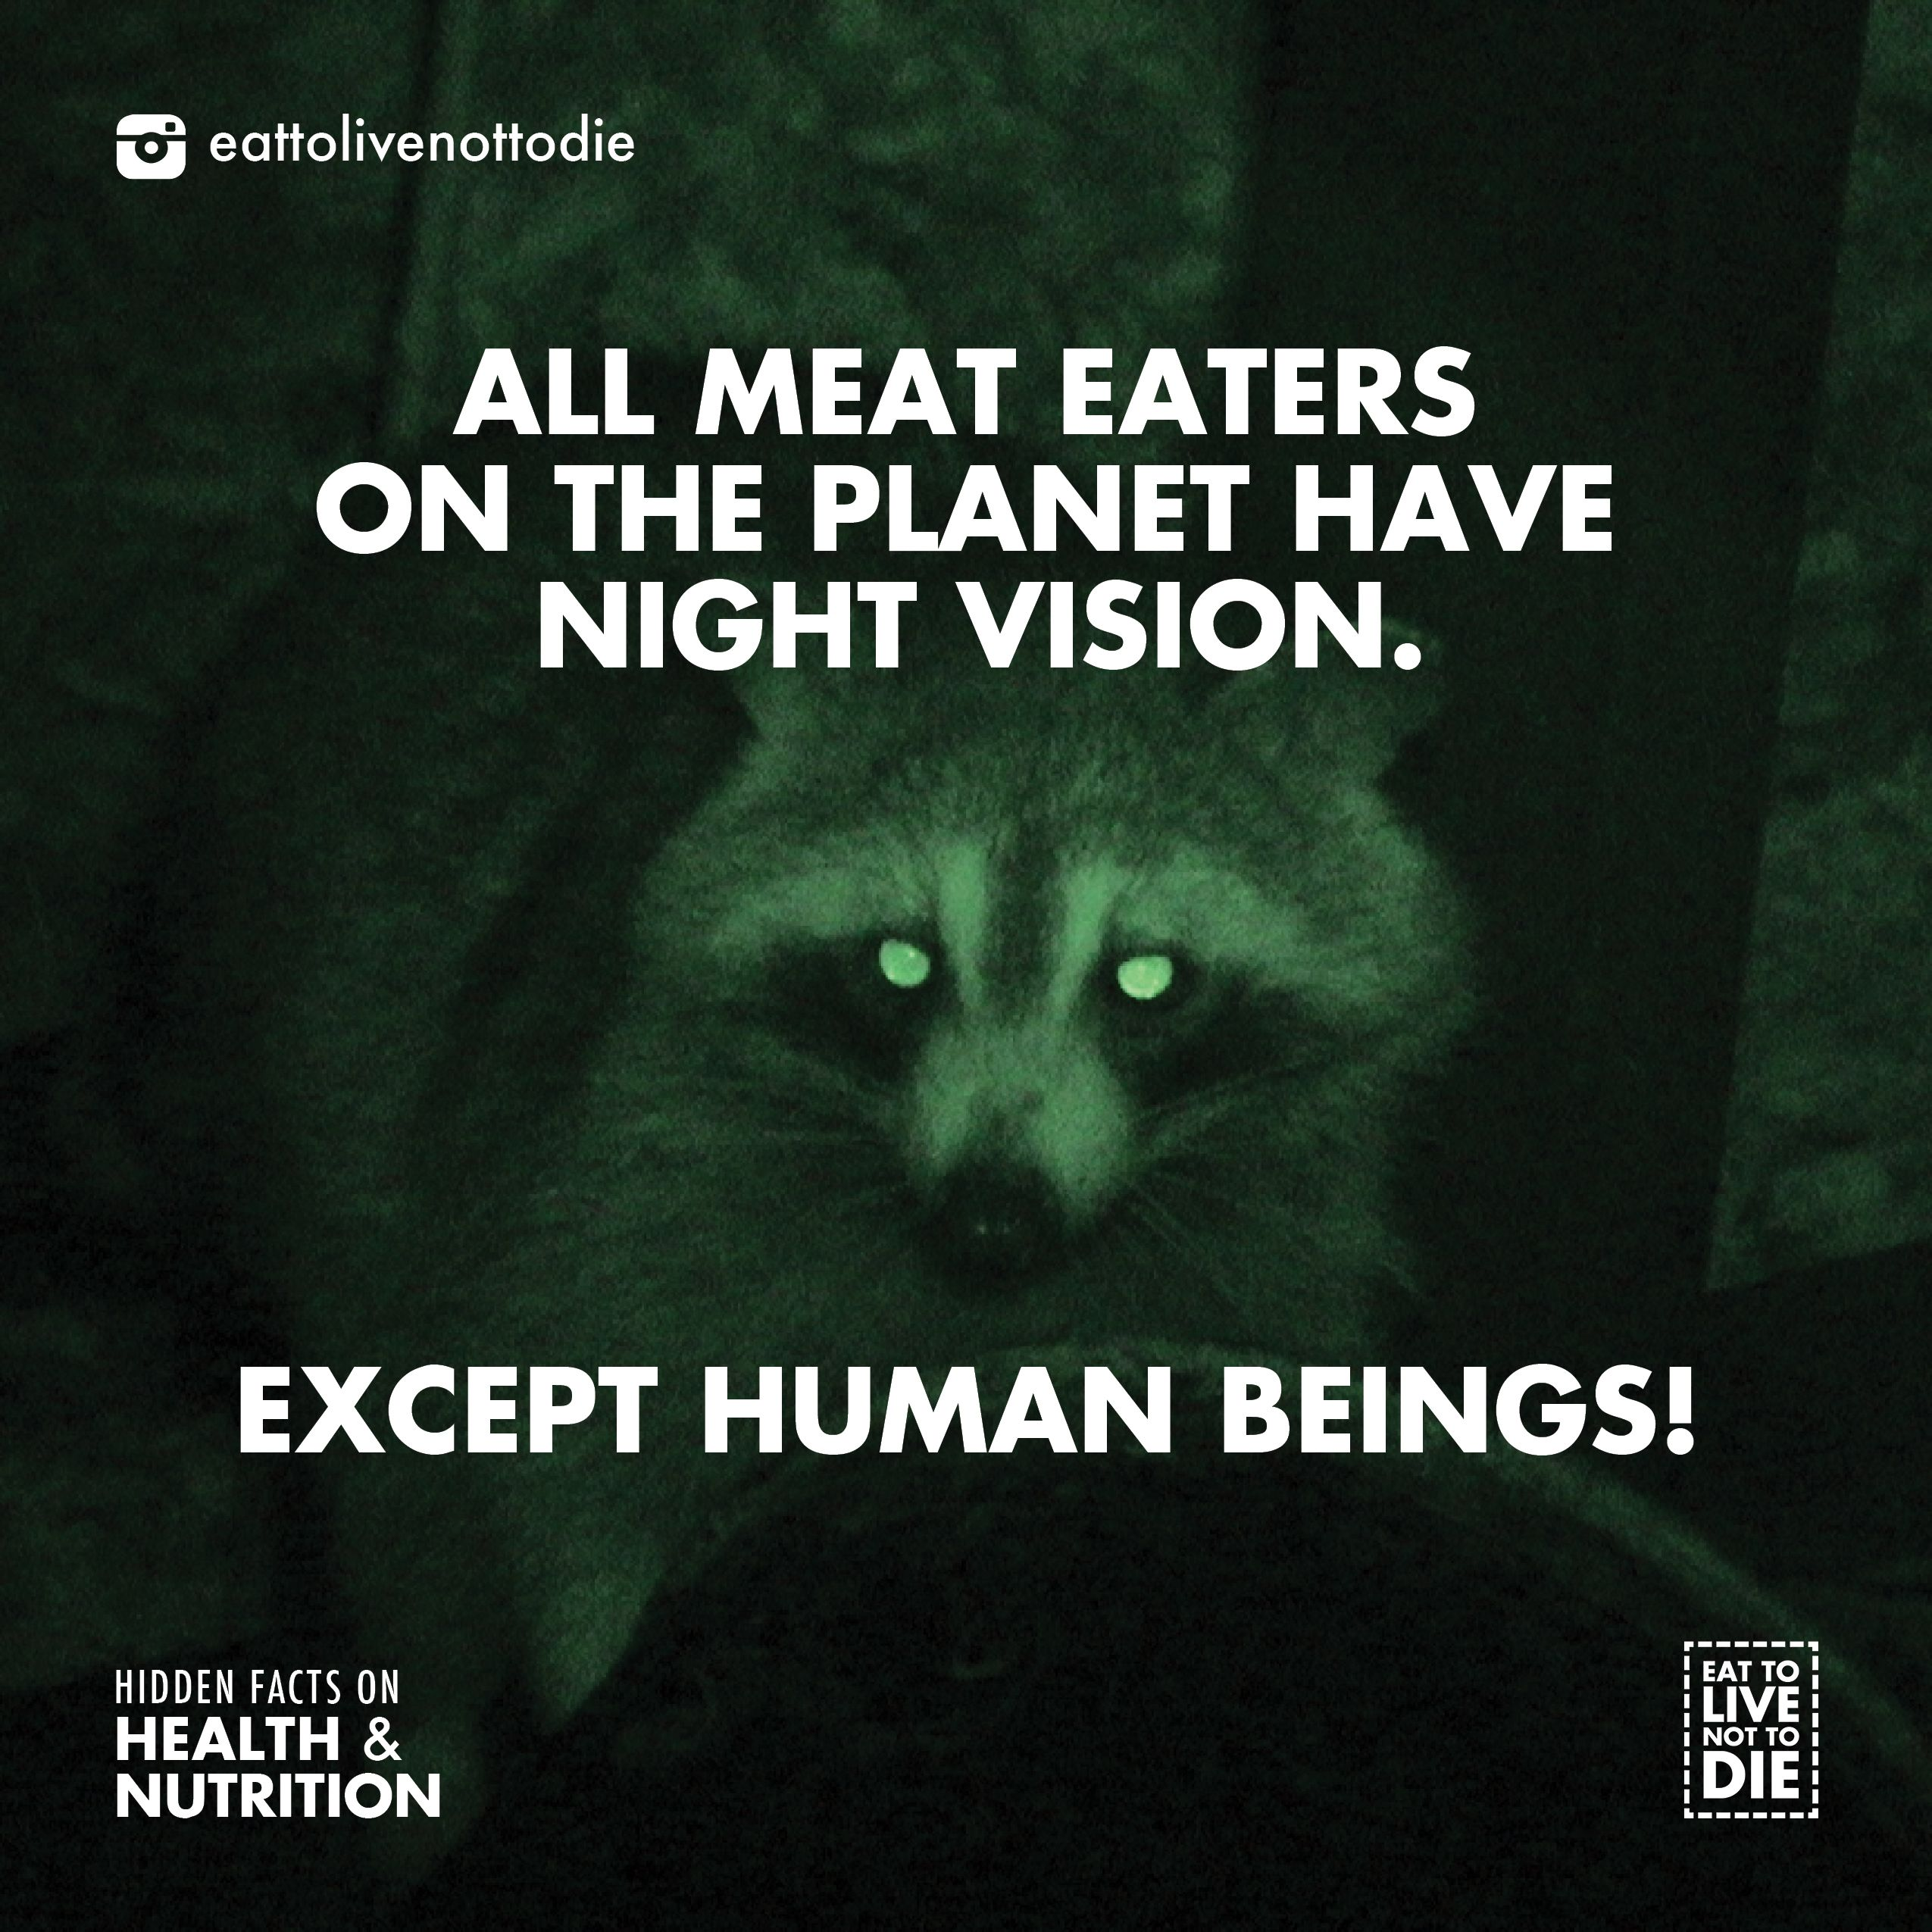 God gave meat eating animals night vision to hunt at night